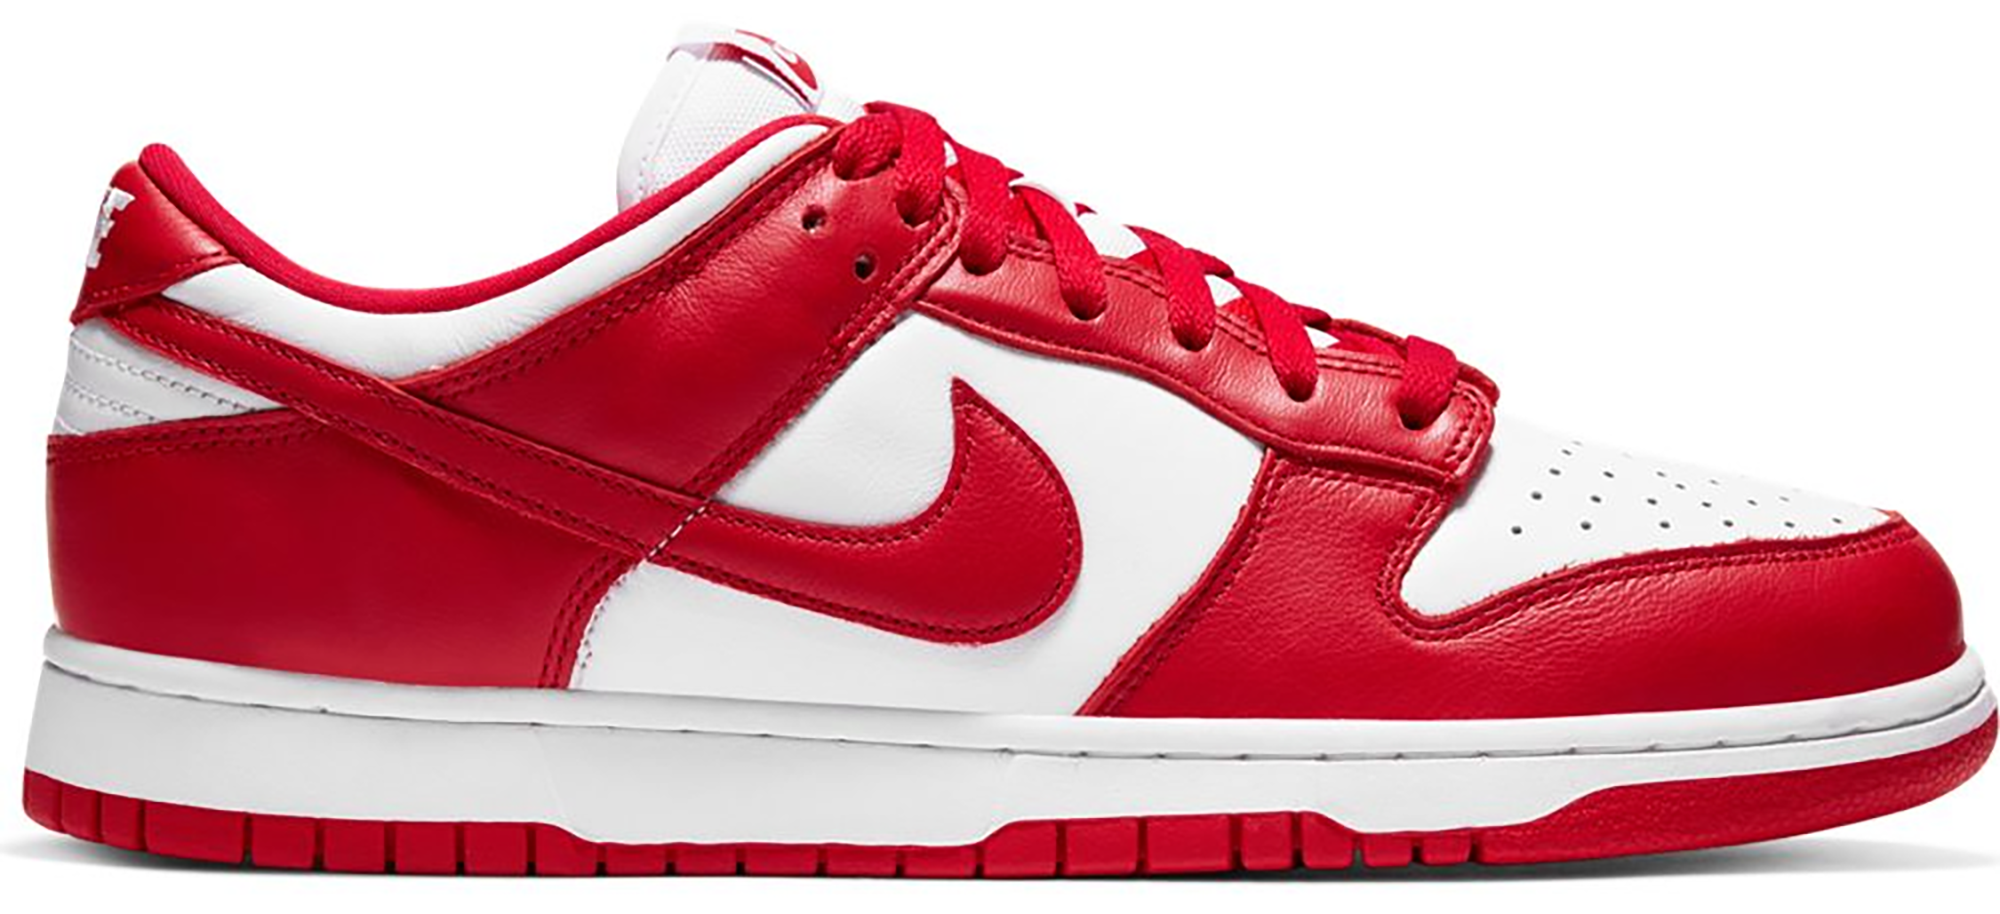 nike low top dunks